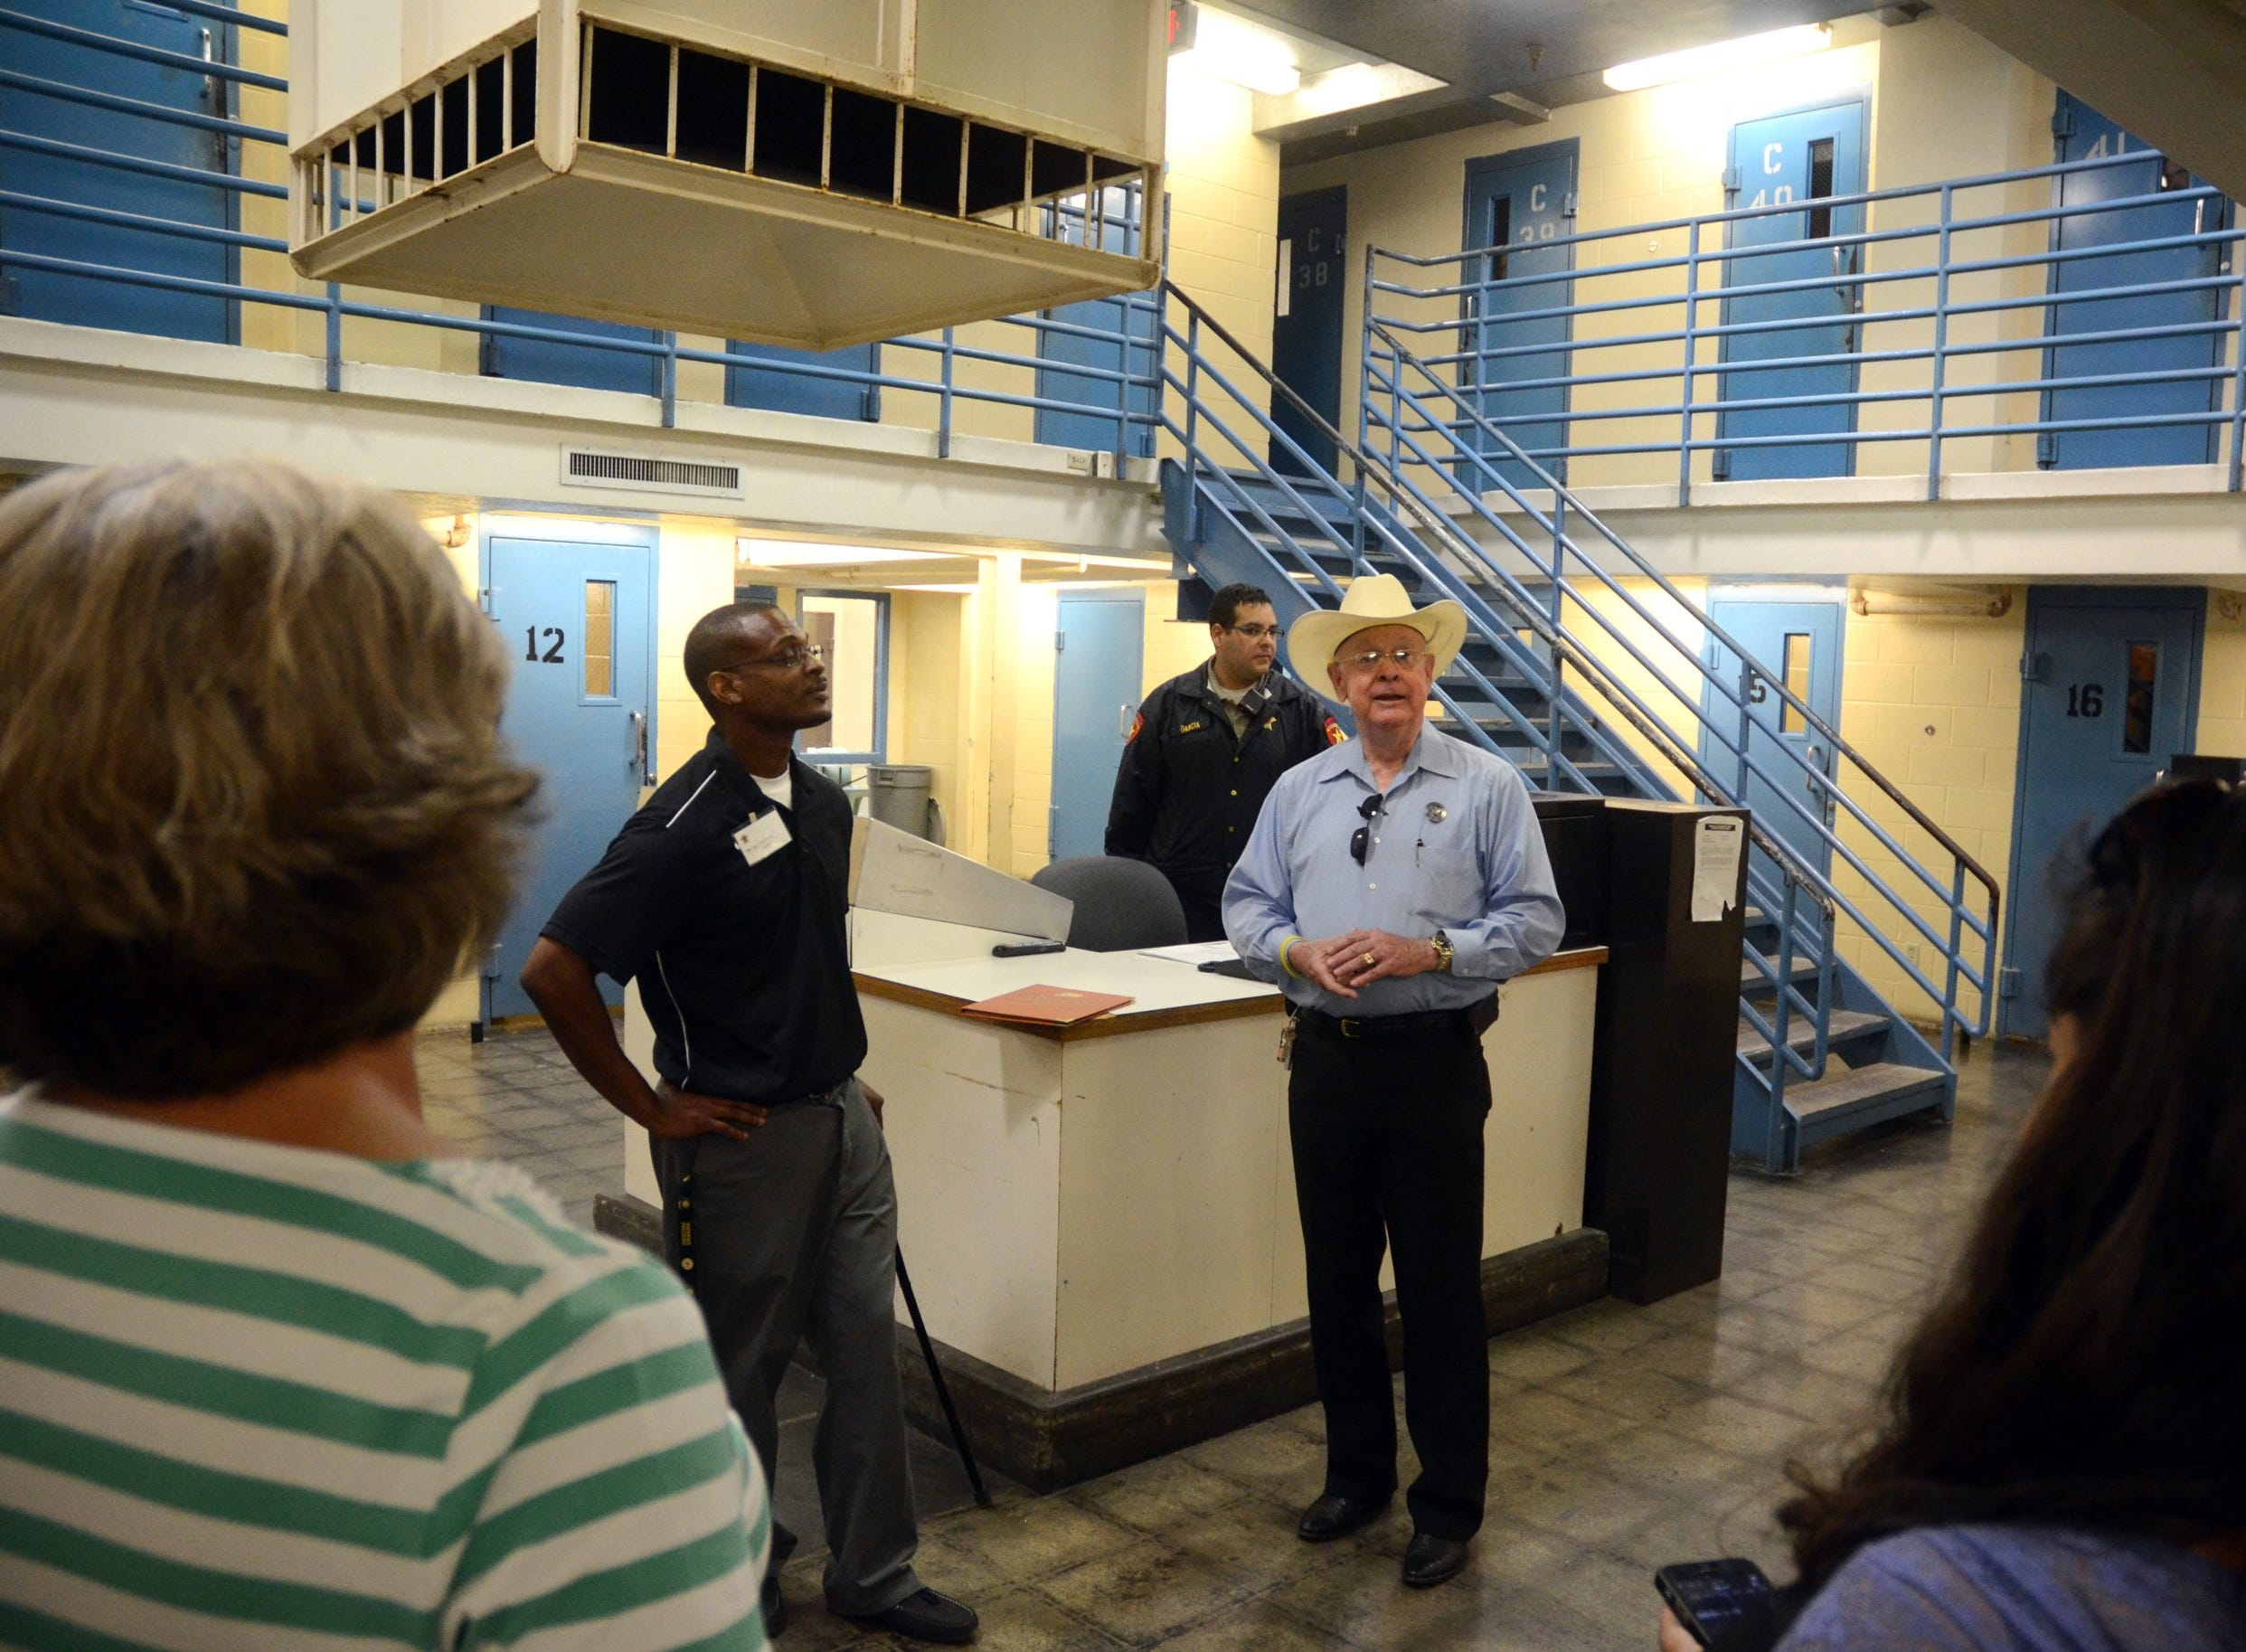 Nueces County Sheriff Jim Kaelin (middle with hat) talking to 5 local middle and high school teachers and couselors in one of the jail areas where they have 28 inmates housed in individual cells. They were there to learn about the Nueces County Sheriff's Office Alternative Incacerations and Jail Industries Programs, during a visit to the Nueces County's McKenzie Jail Annex.